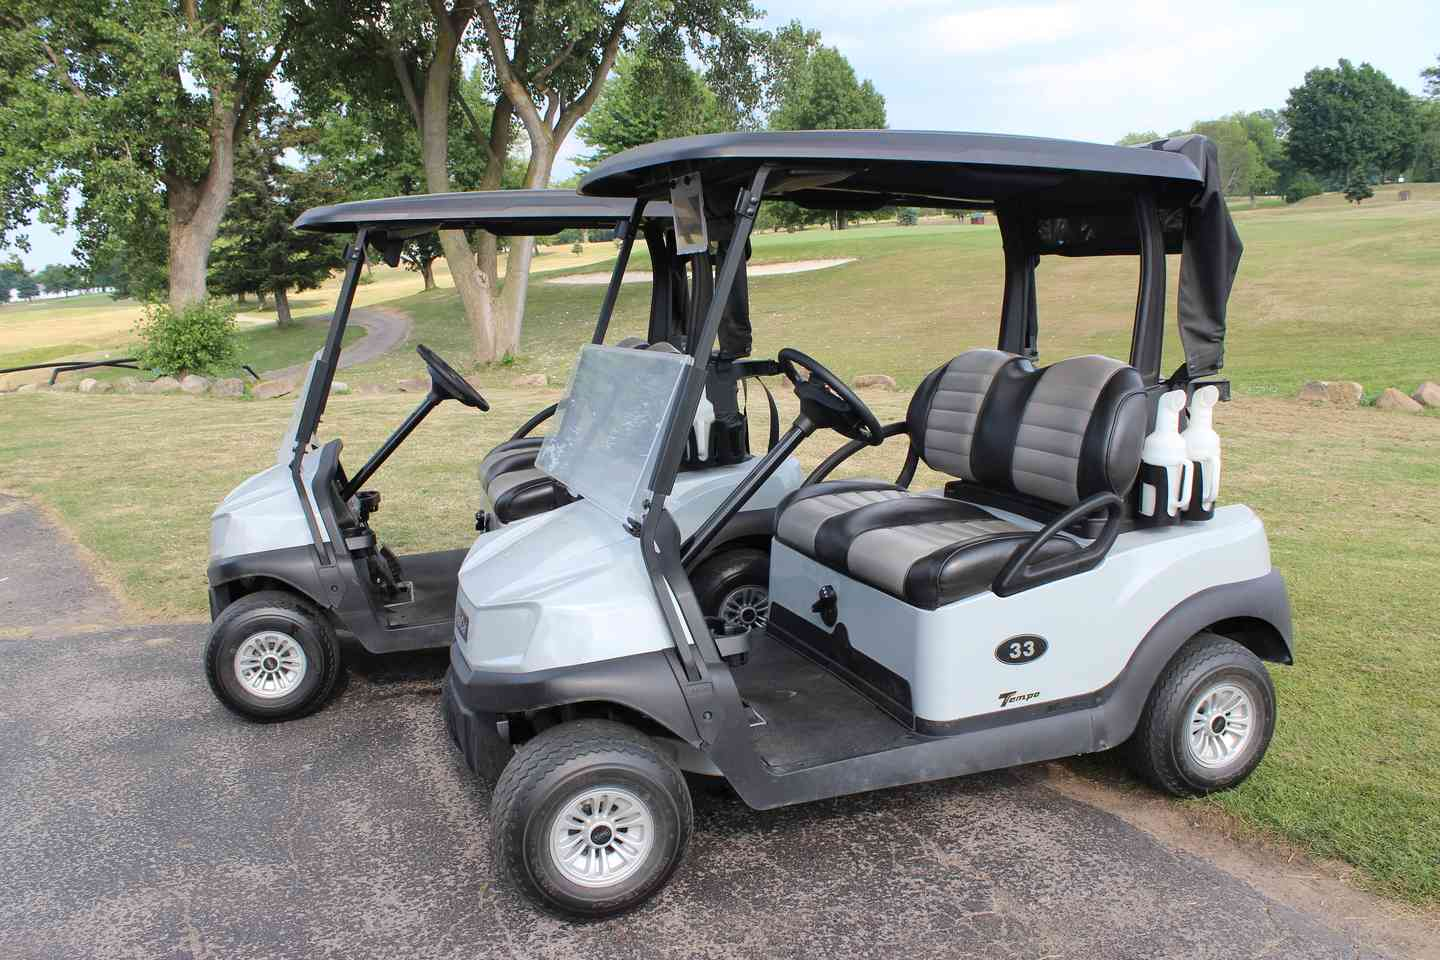 Two golf carts